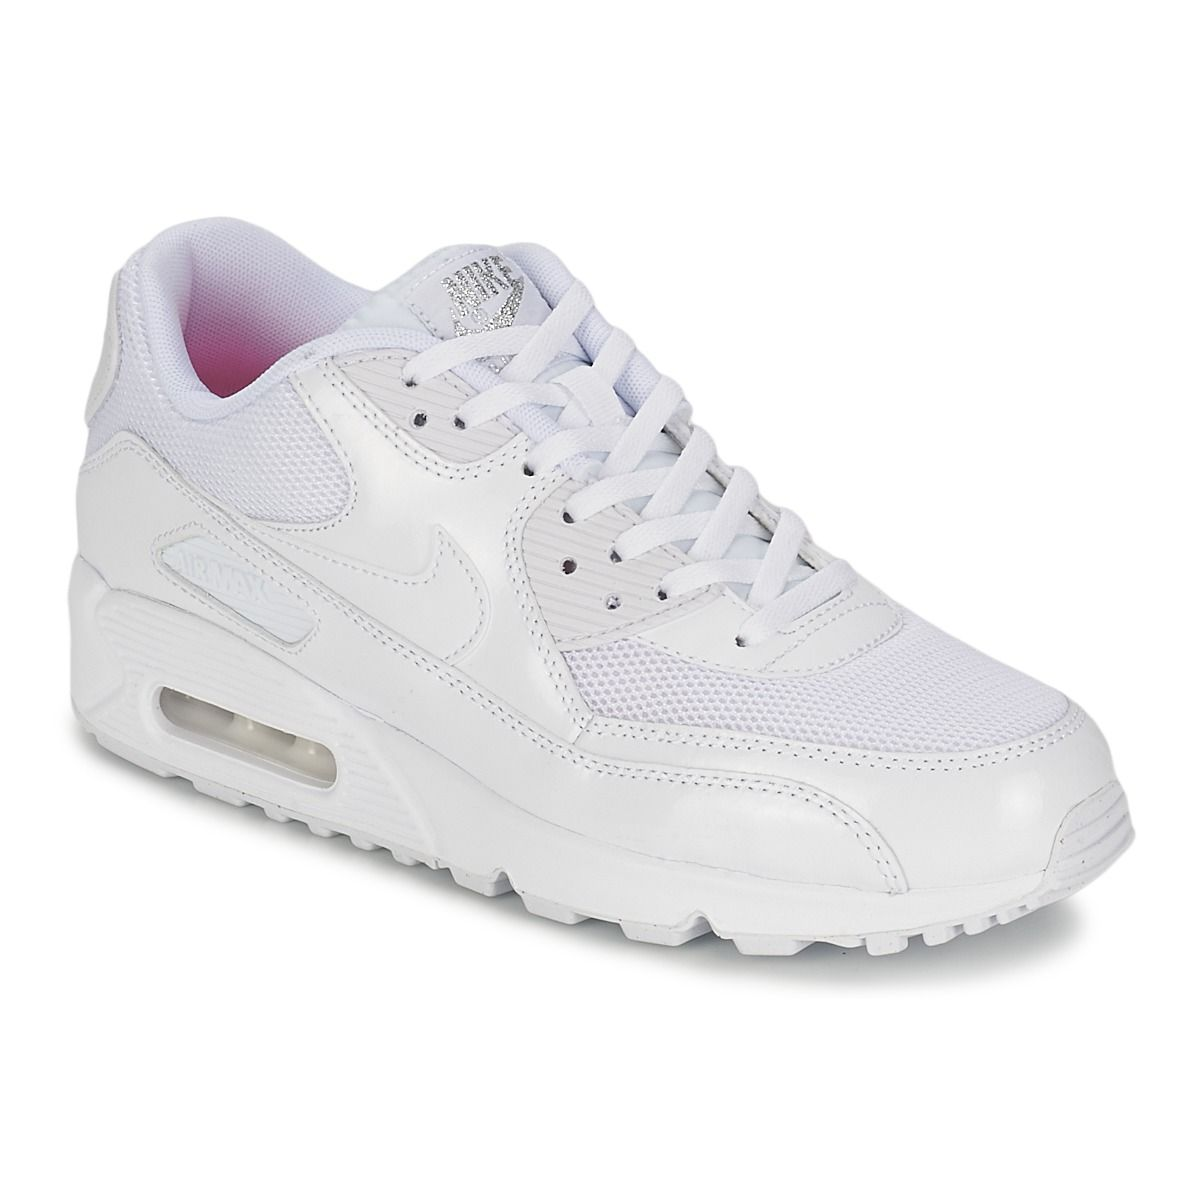 Baskets basses Nike AIR MAX 90 Blanc en 2019 | Baskets Femme